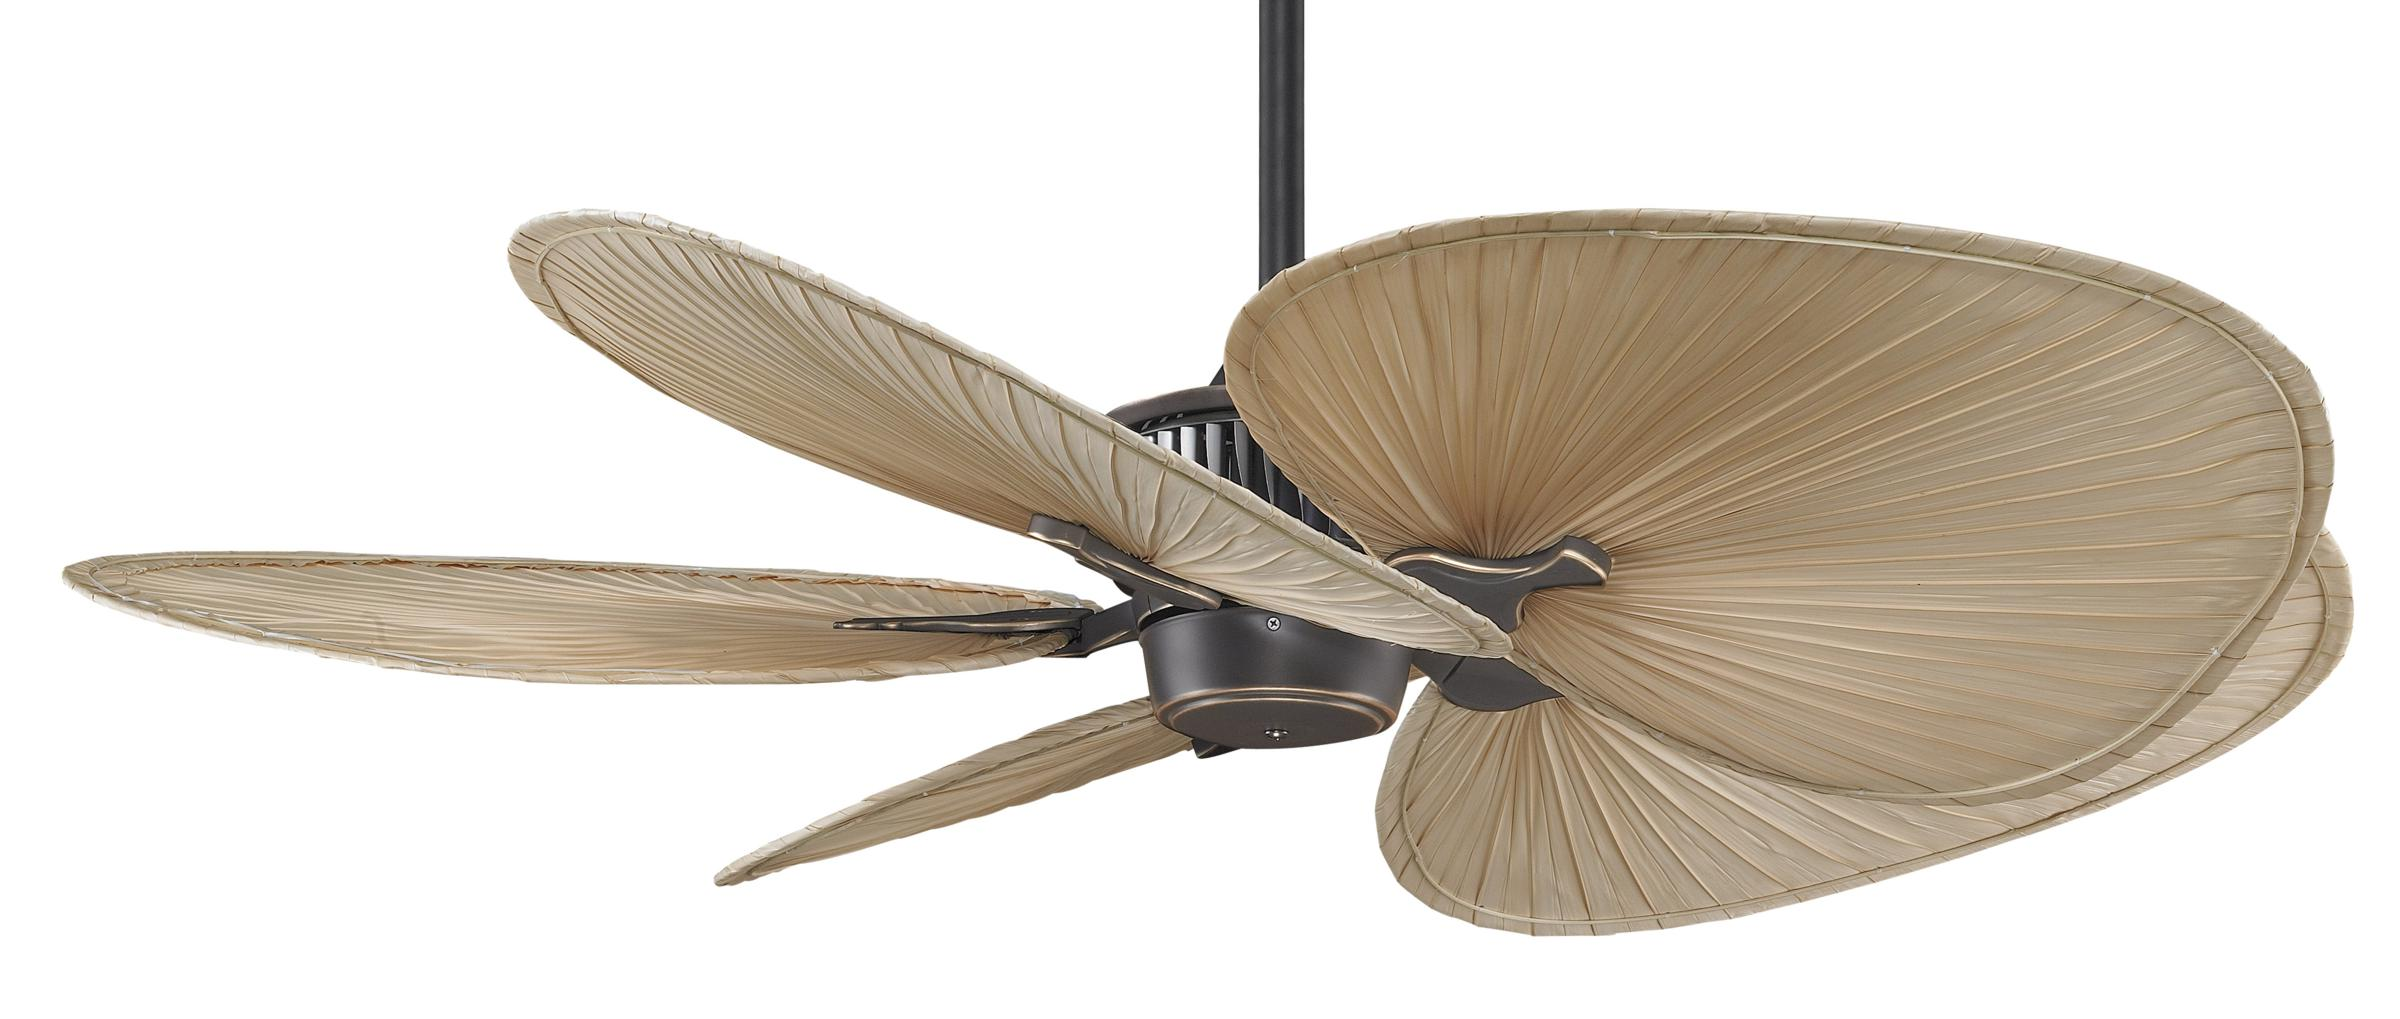 98 Ceiling Fans With Palm Blades